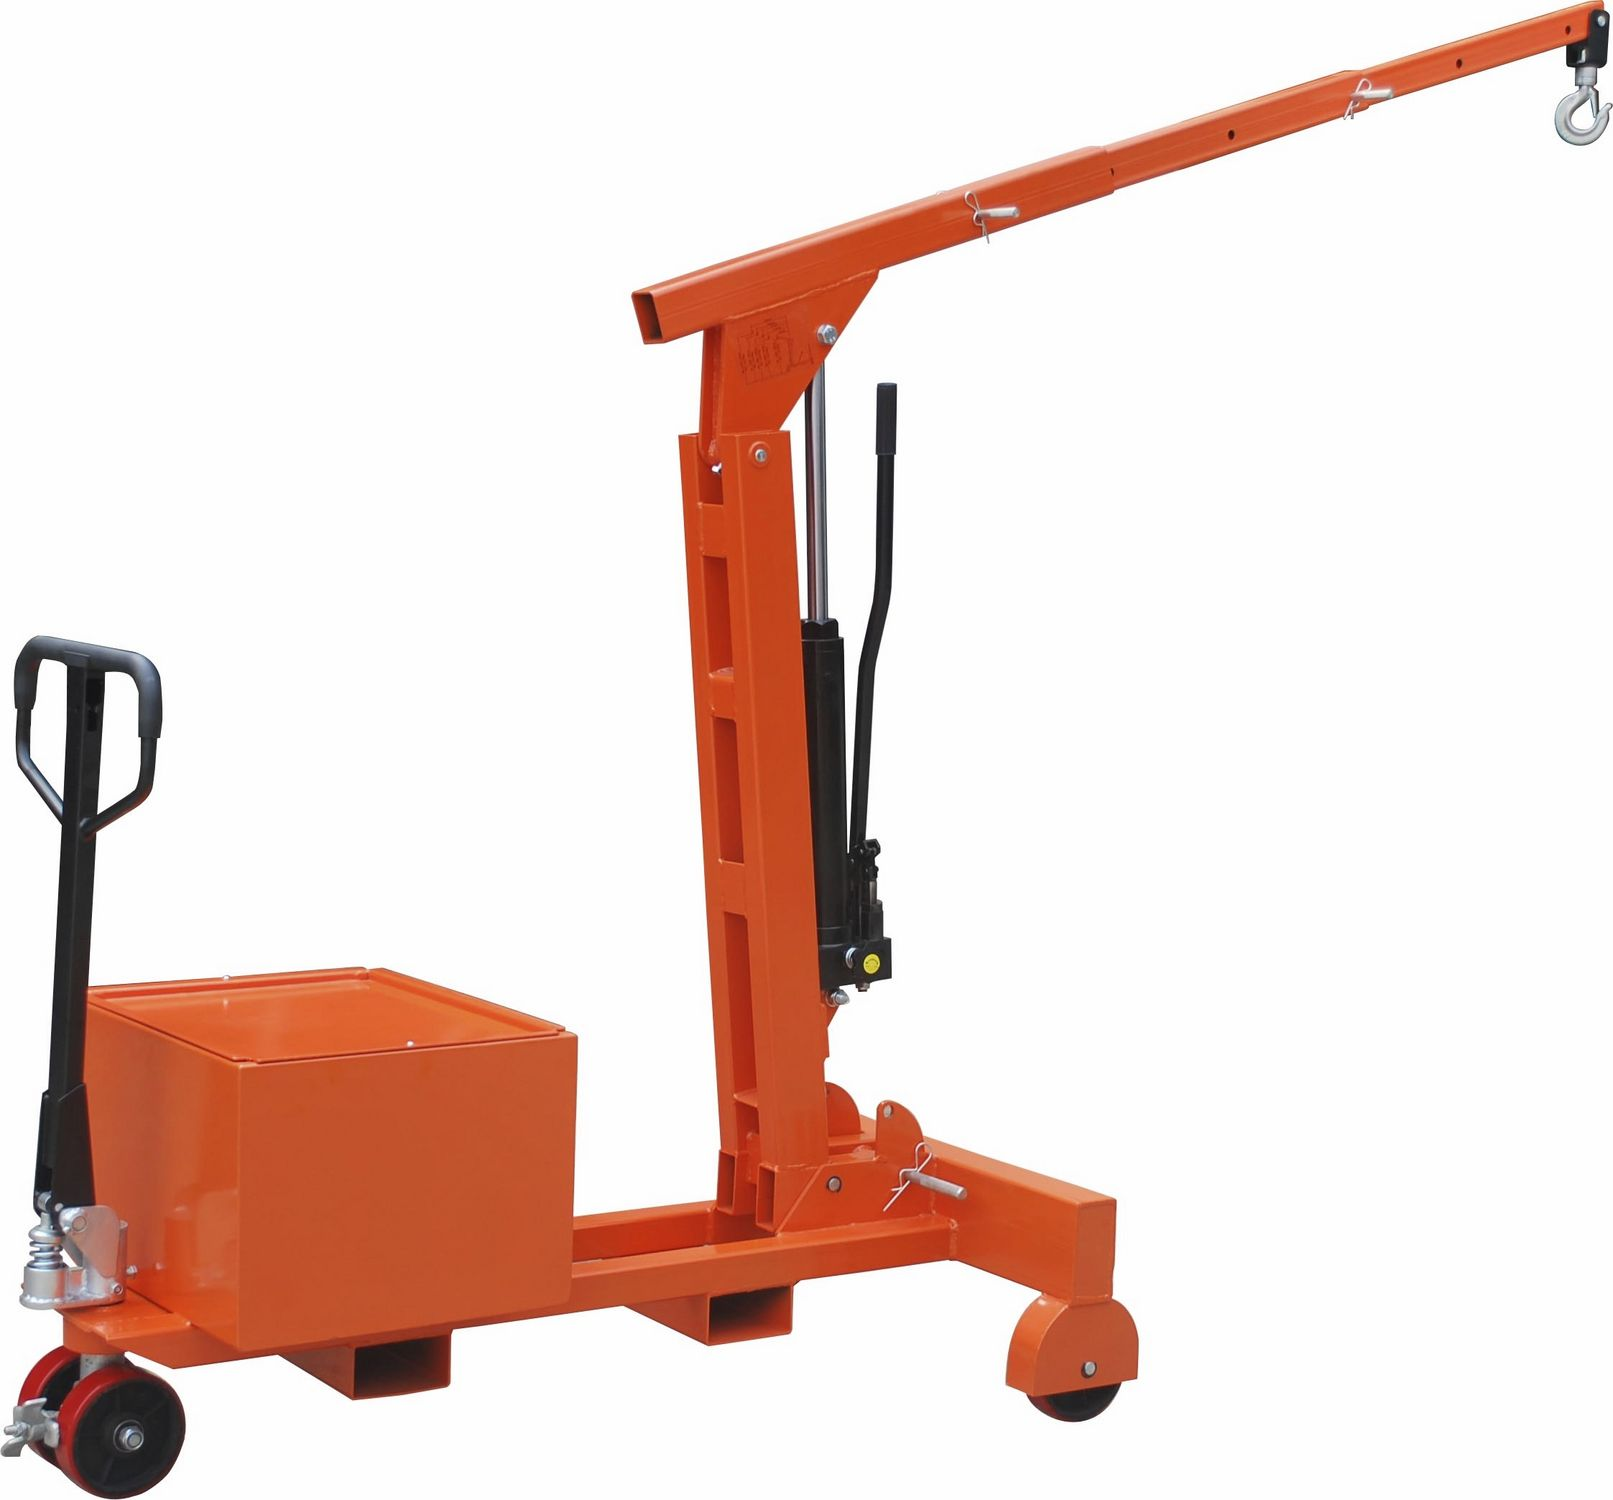 Why We Need Machine Lifting Equipment Frp Manufacturer